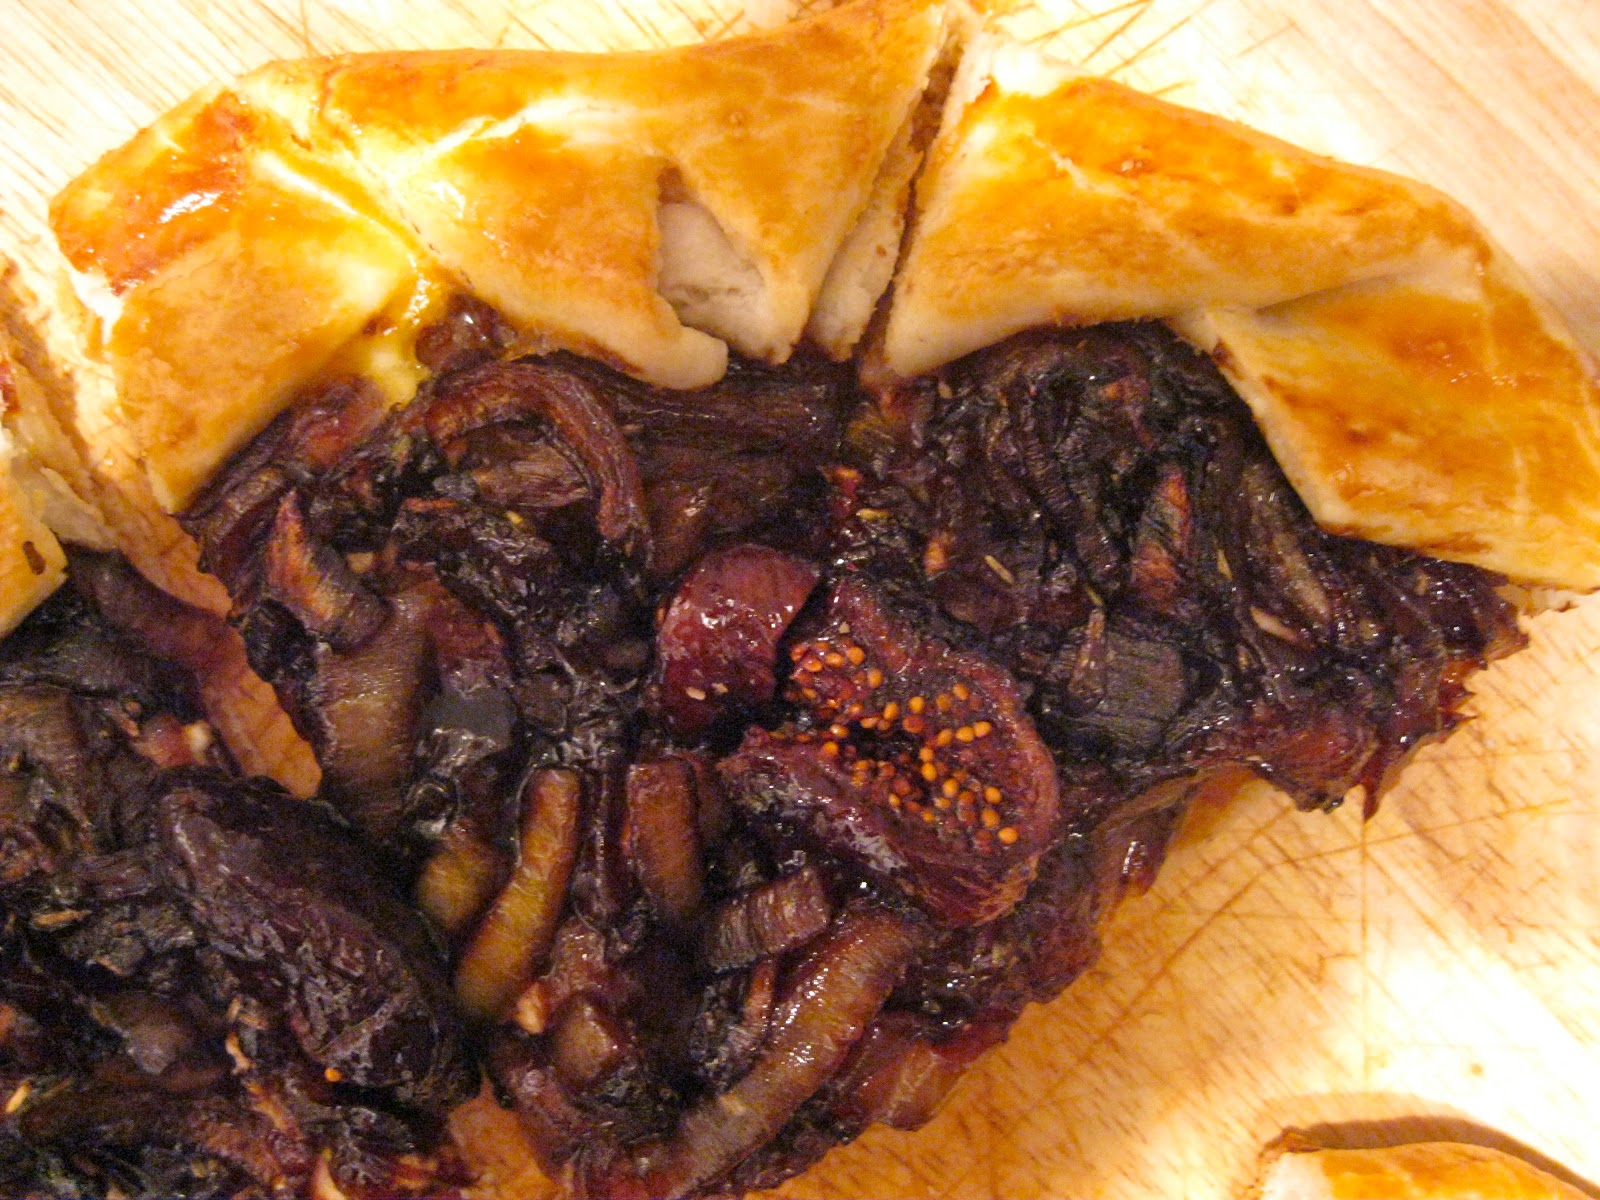 twin tastes : Glitzy Fig Galette and Moscow Mule